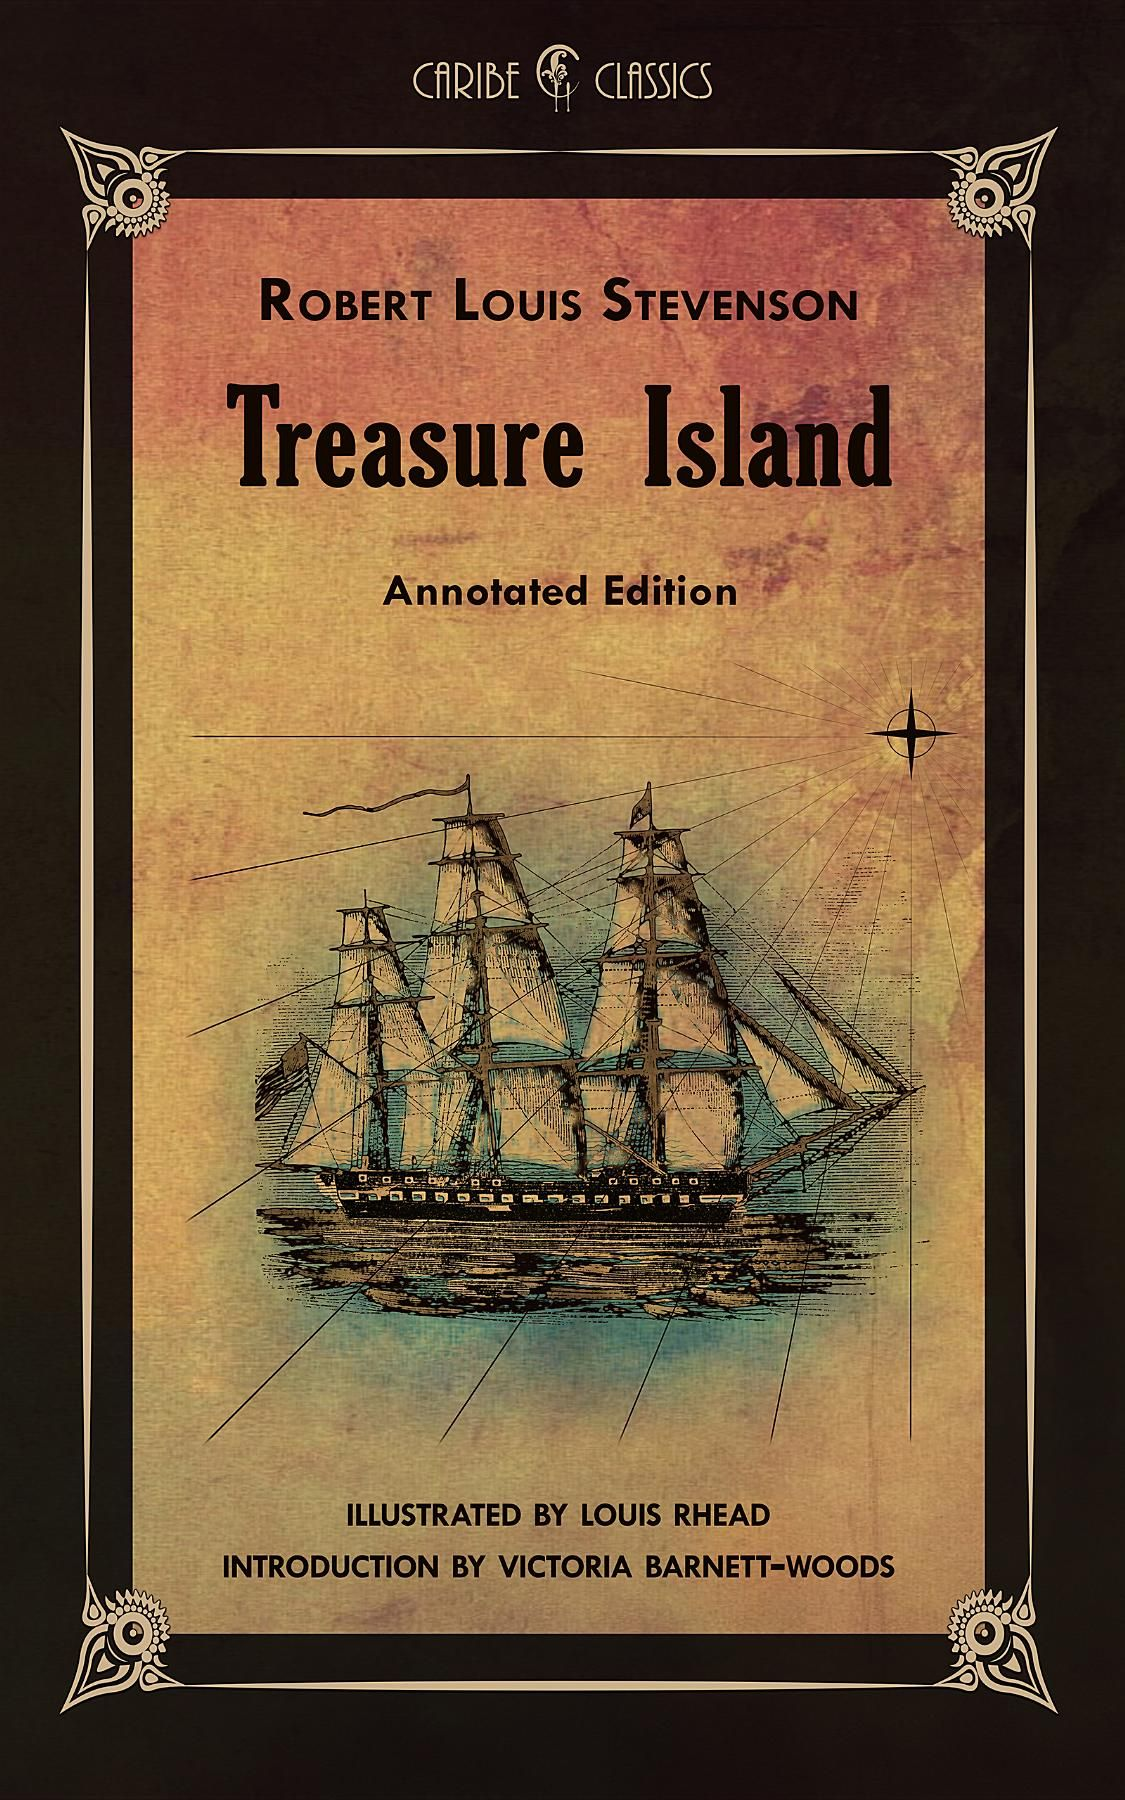 treasure island introduction essay The adventure story told in treasure island has become a part of popular folklore john sutherland discusses the novel's place in stevenson's biography and oeuvre in his learned and lively critical introduction to this new edition.